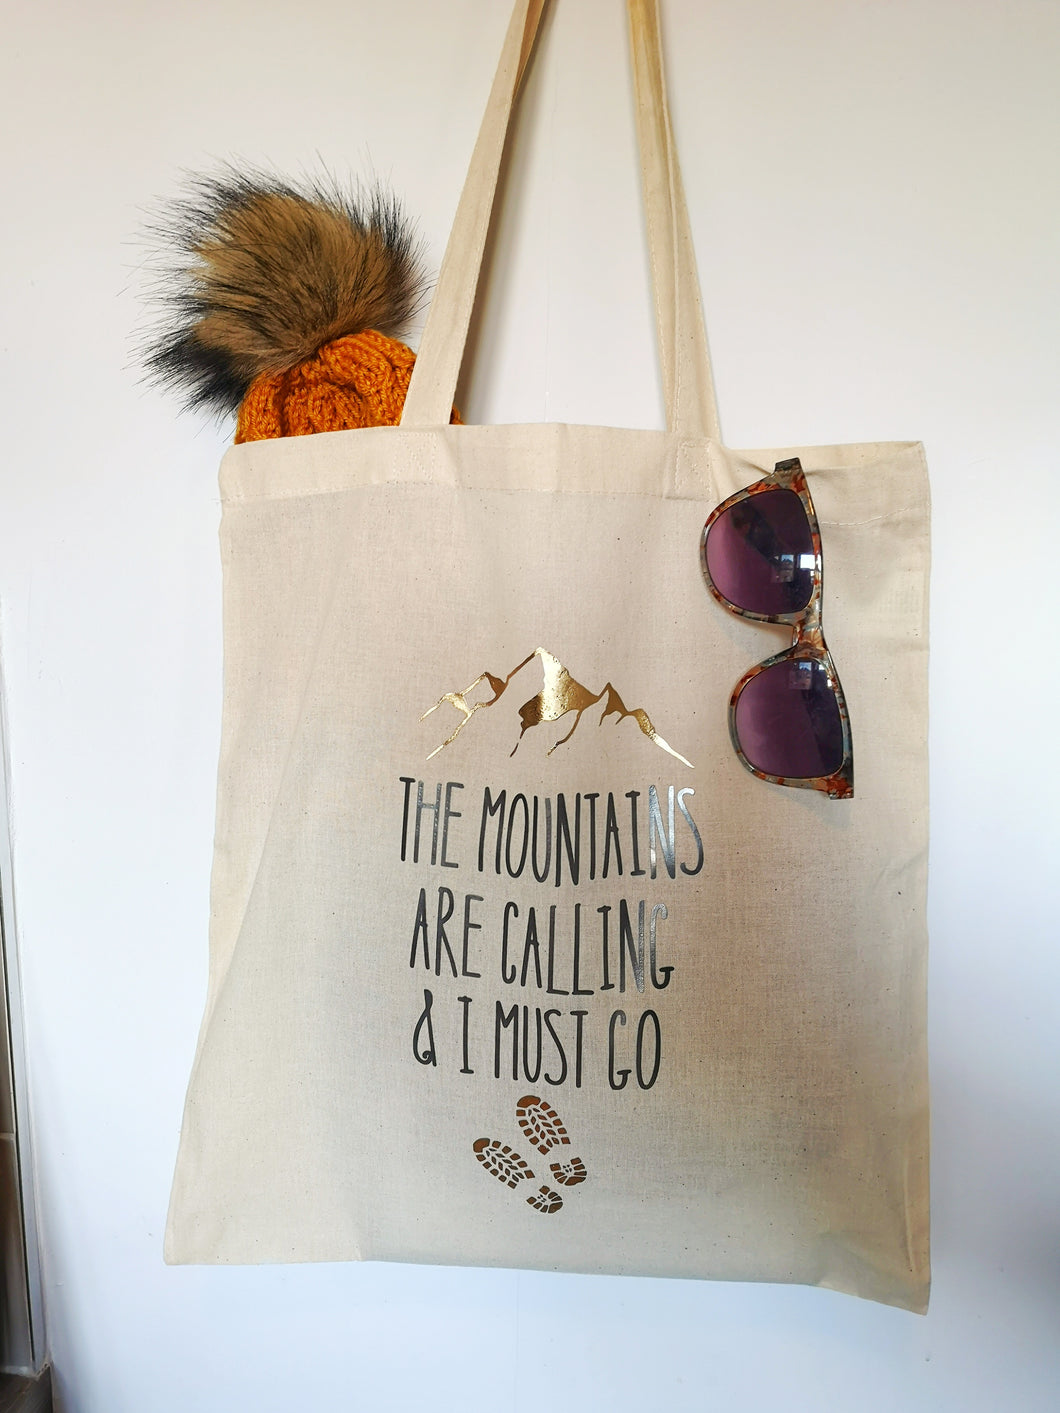 'The mountains are calling and I must go' Tote Bag